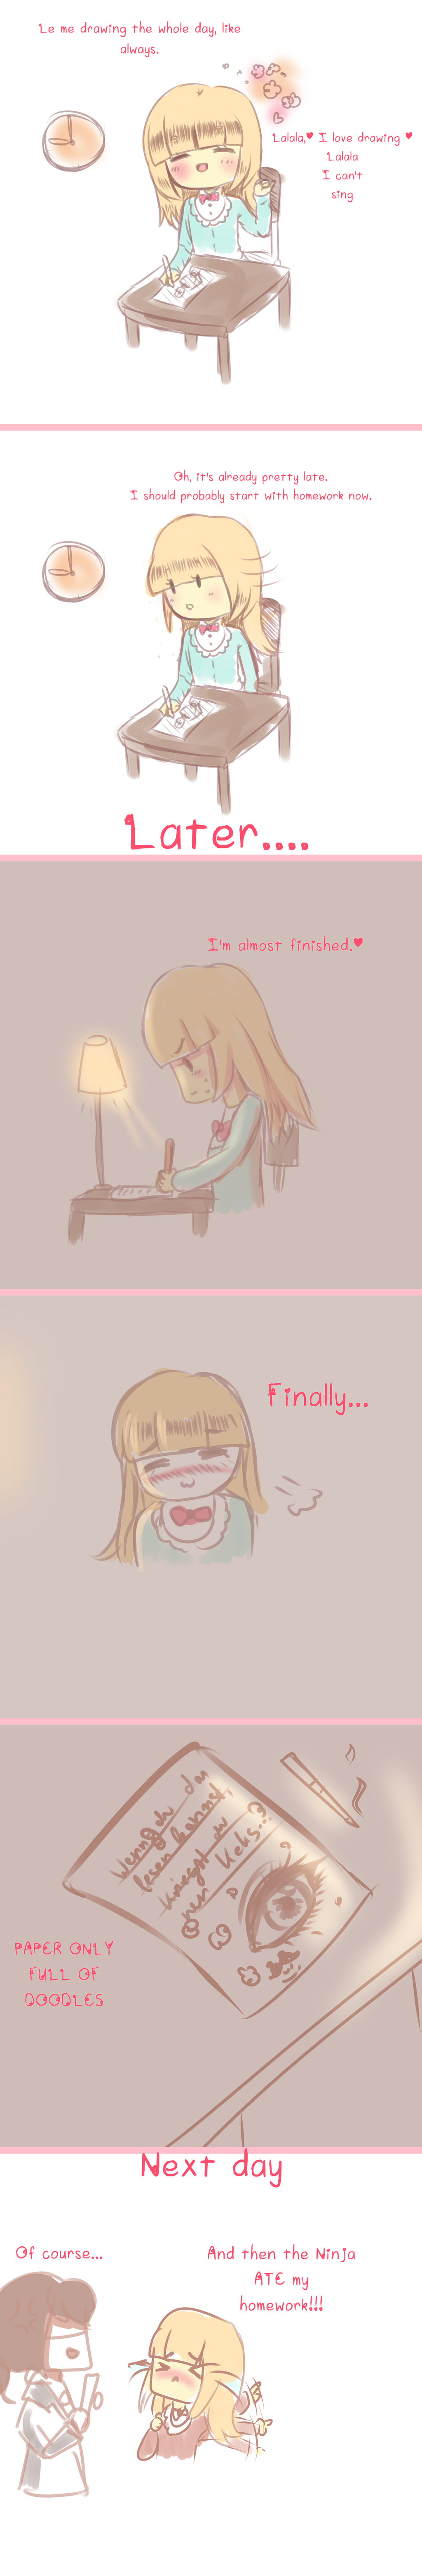 This happens to me everyday by Luumies